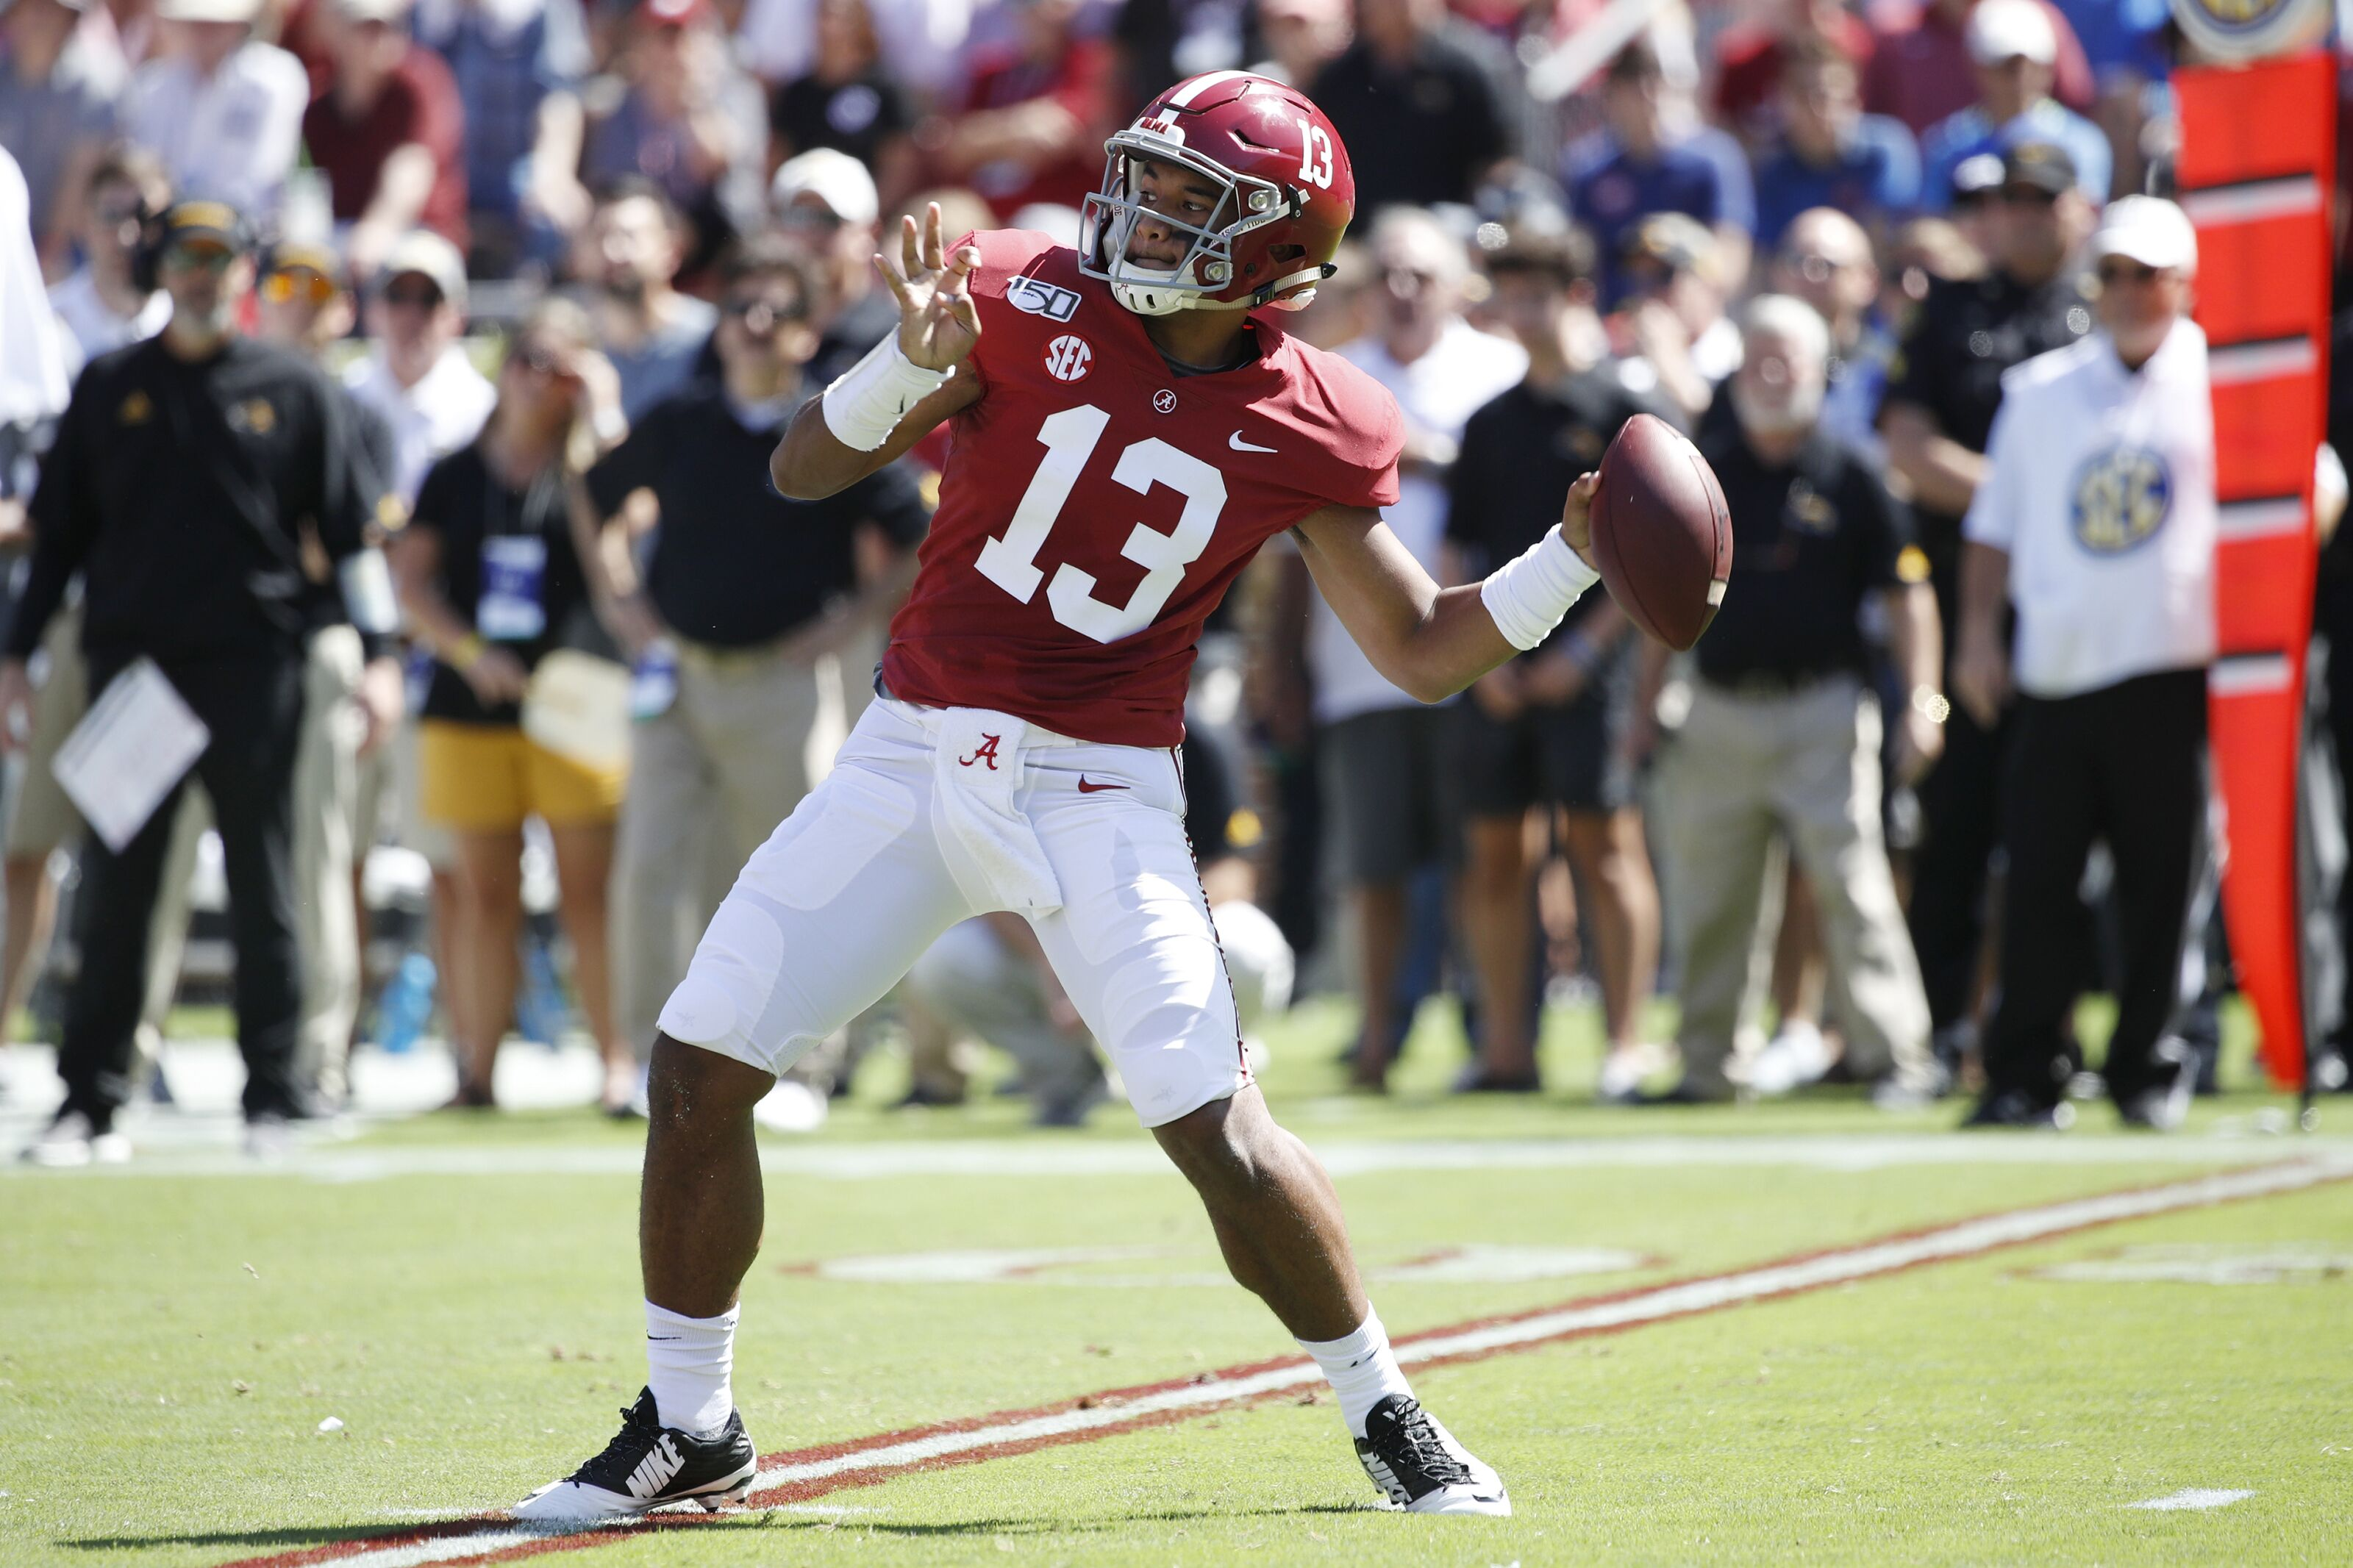 2020 NFL Draft: Updated mid-season positional rankings and big board